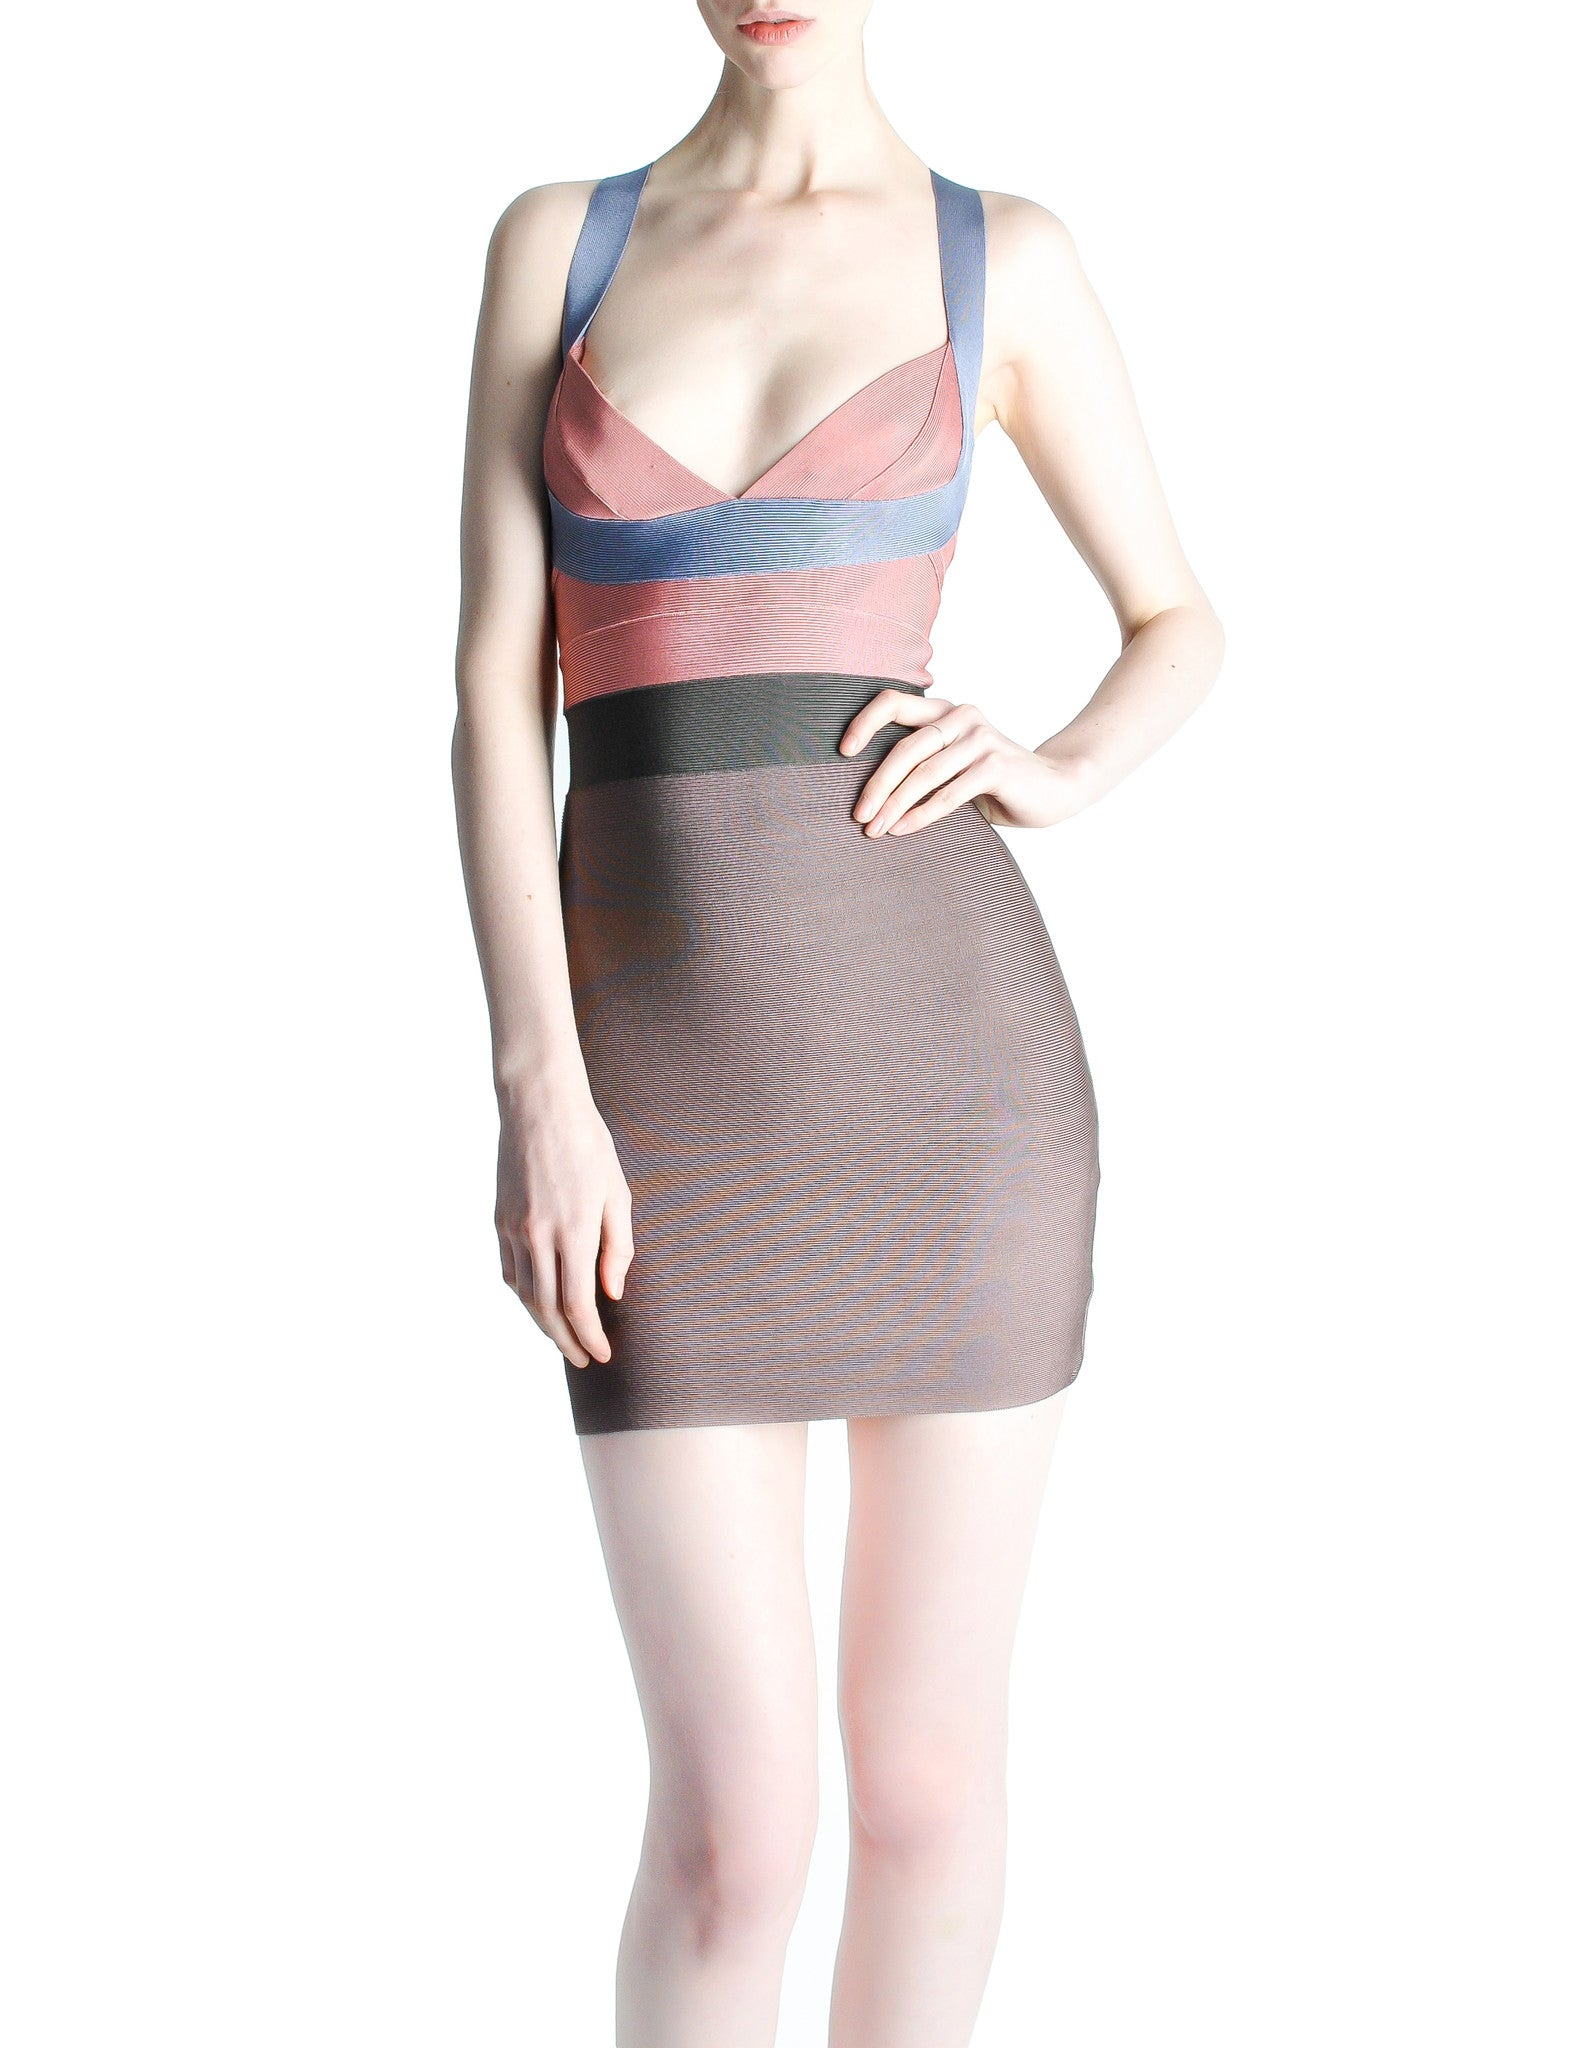 Herve Leger Bandage Body Con Dress - Amarcord Vintage Fashion  - 1